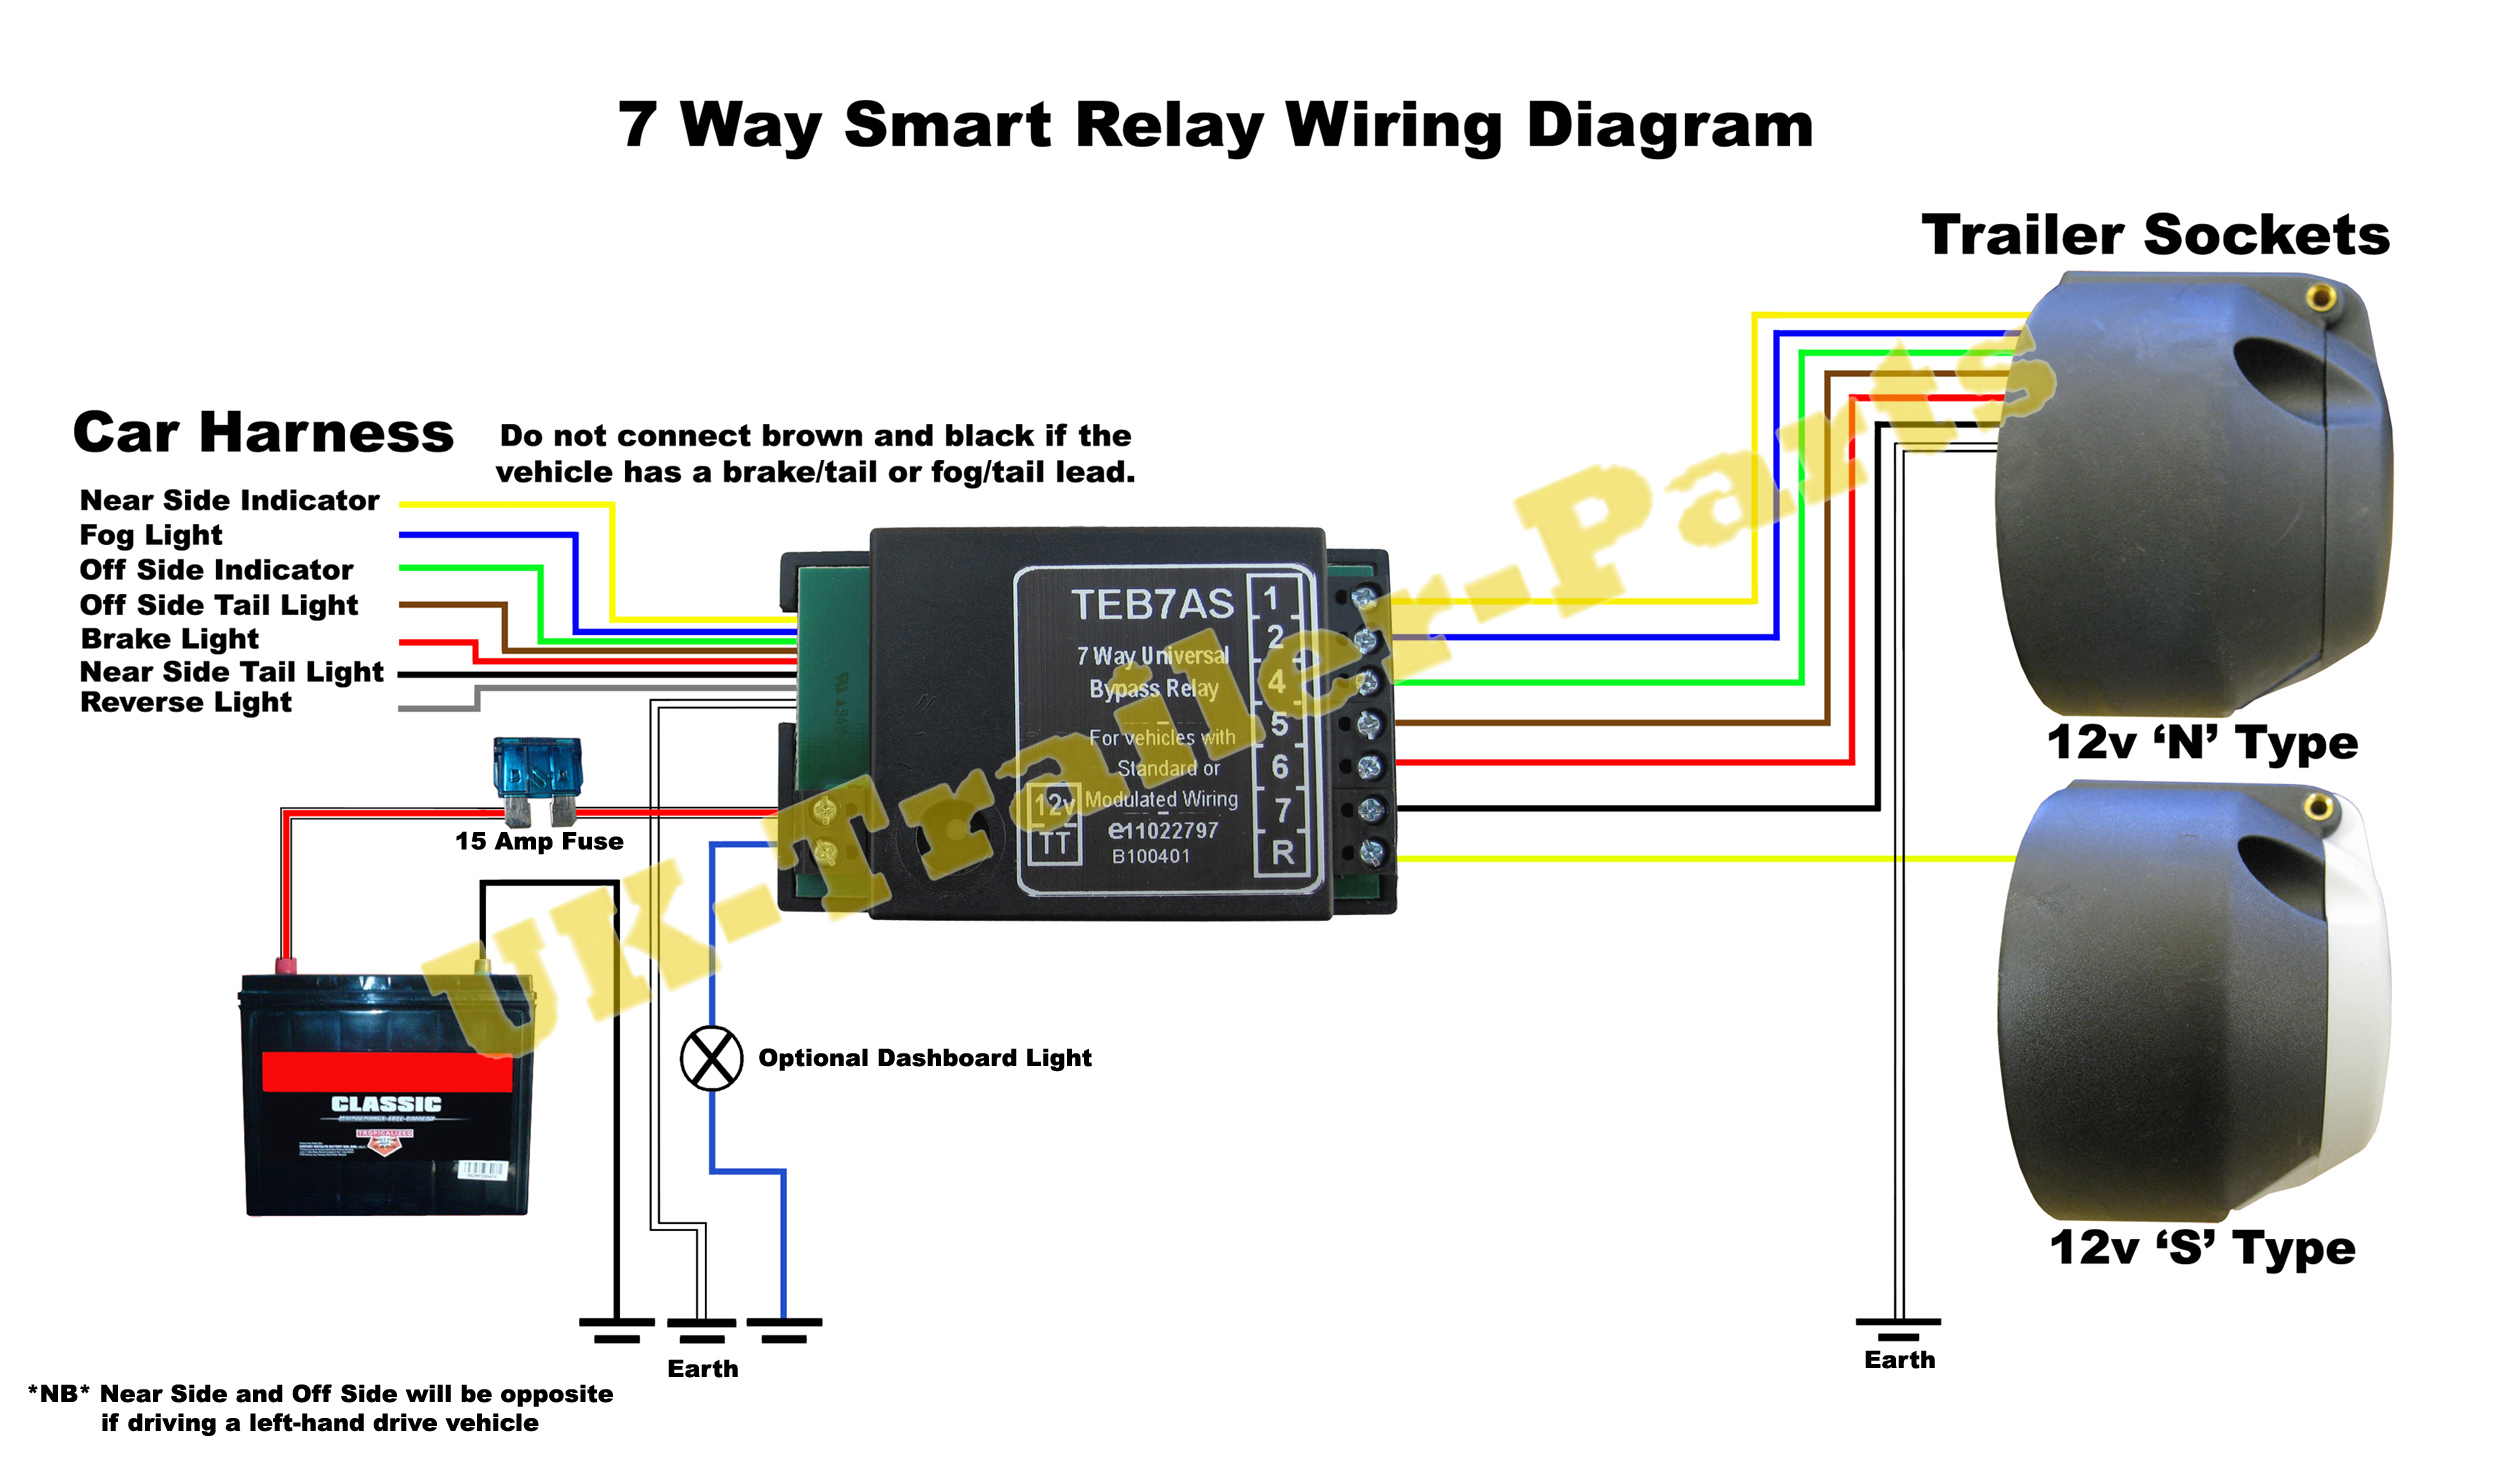 smart relay wiring diagram2 7 way universal bypass relay wiring diagram uk trailer parts volvo v70 towbar wiring diagram at webbmarketing.co